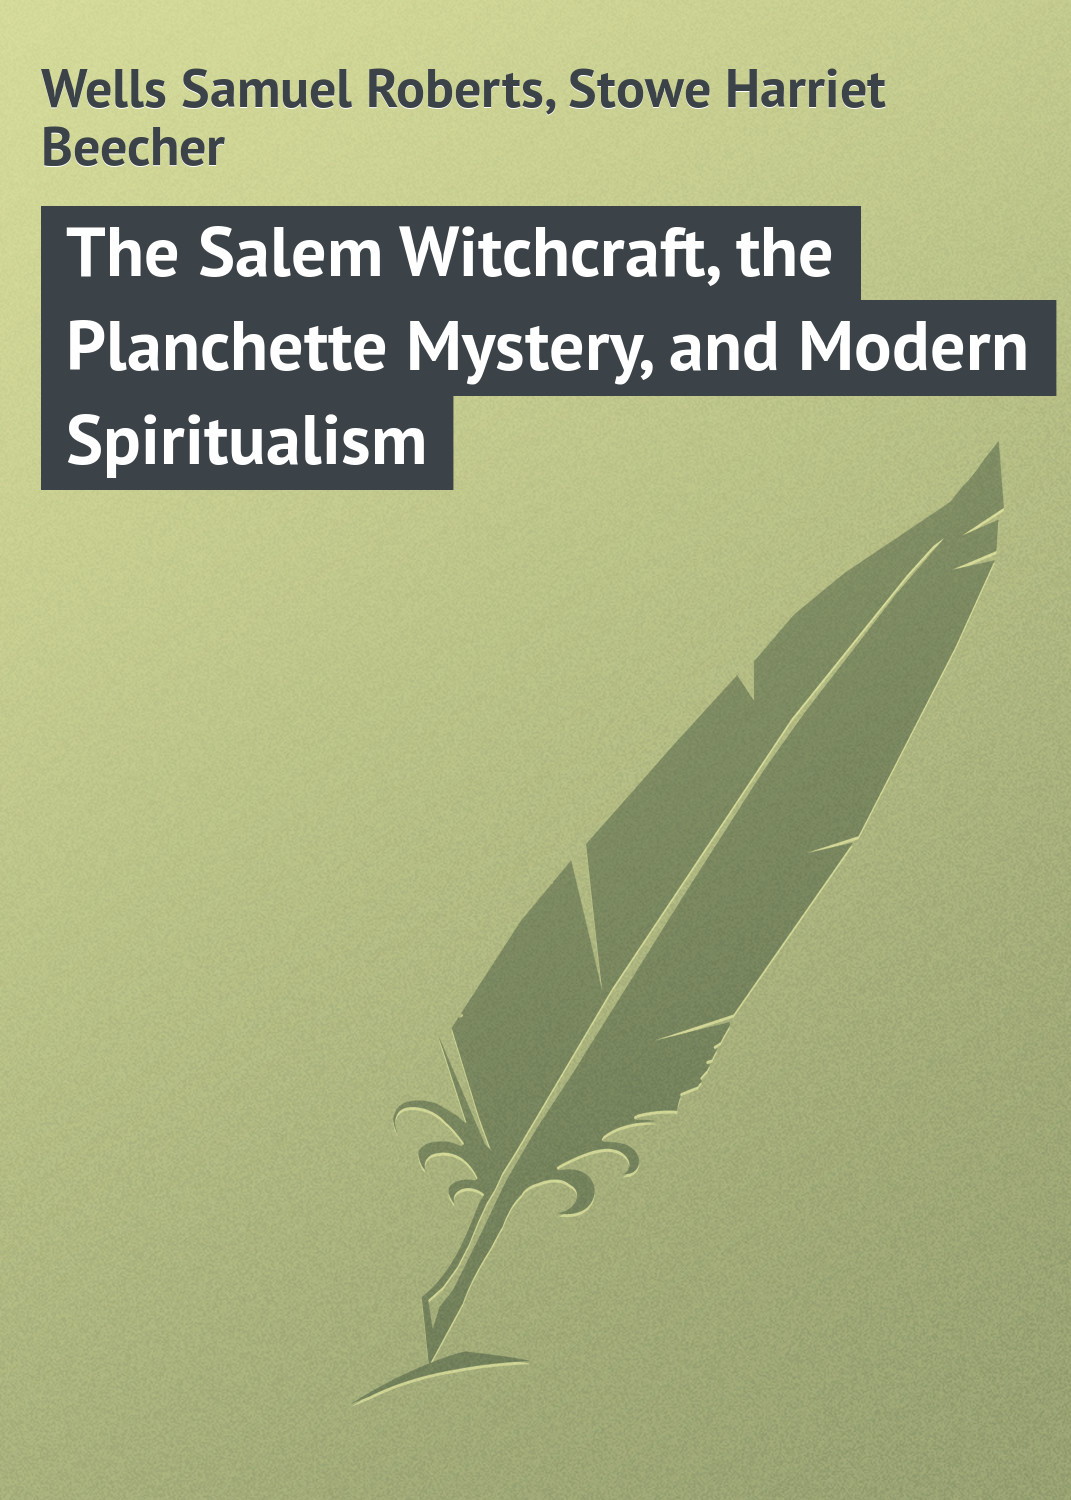 The Salem Witchcraft, the Planchette Mystery, and Modern Spiritualism